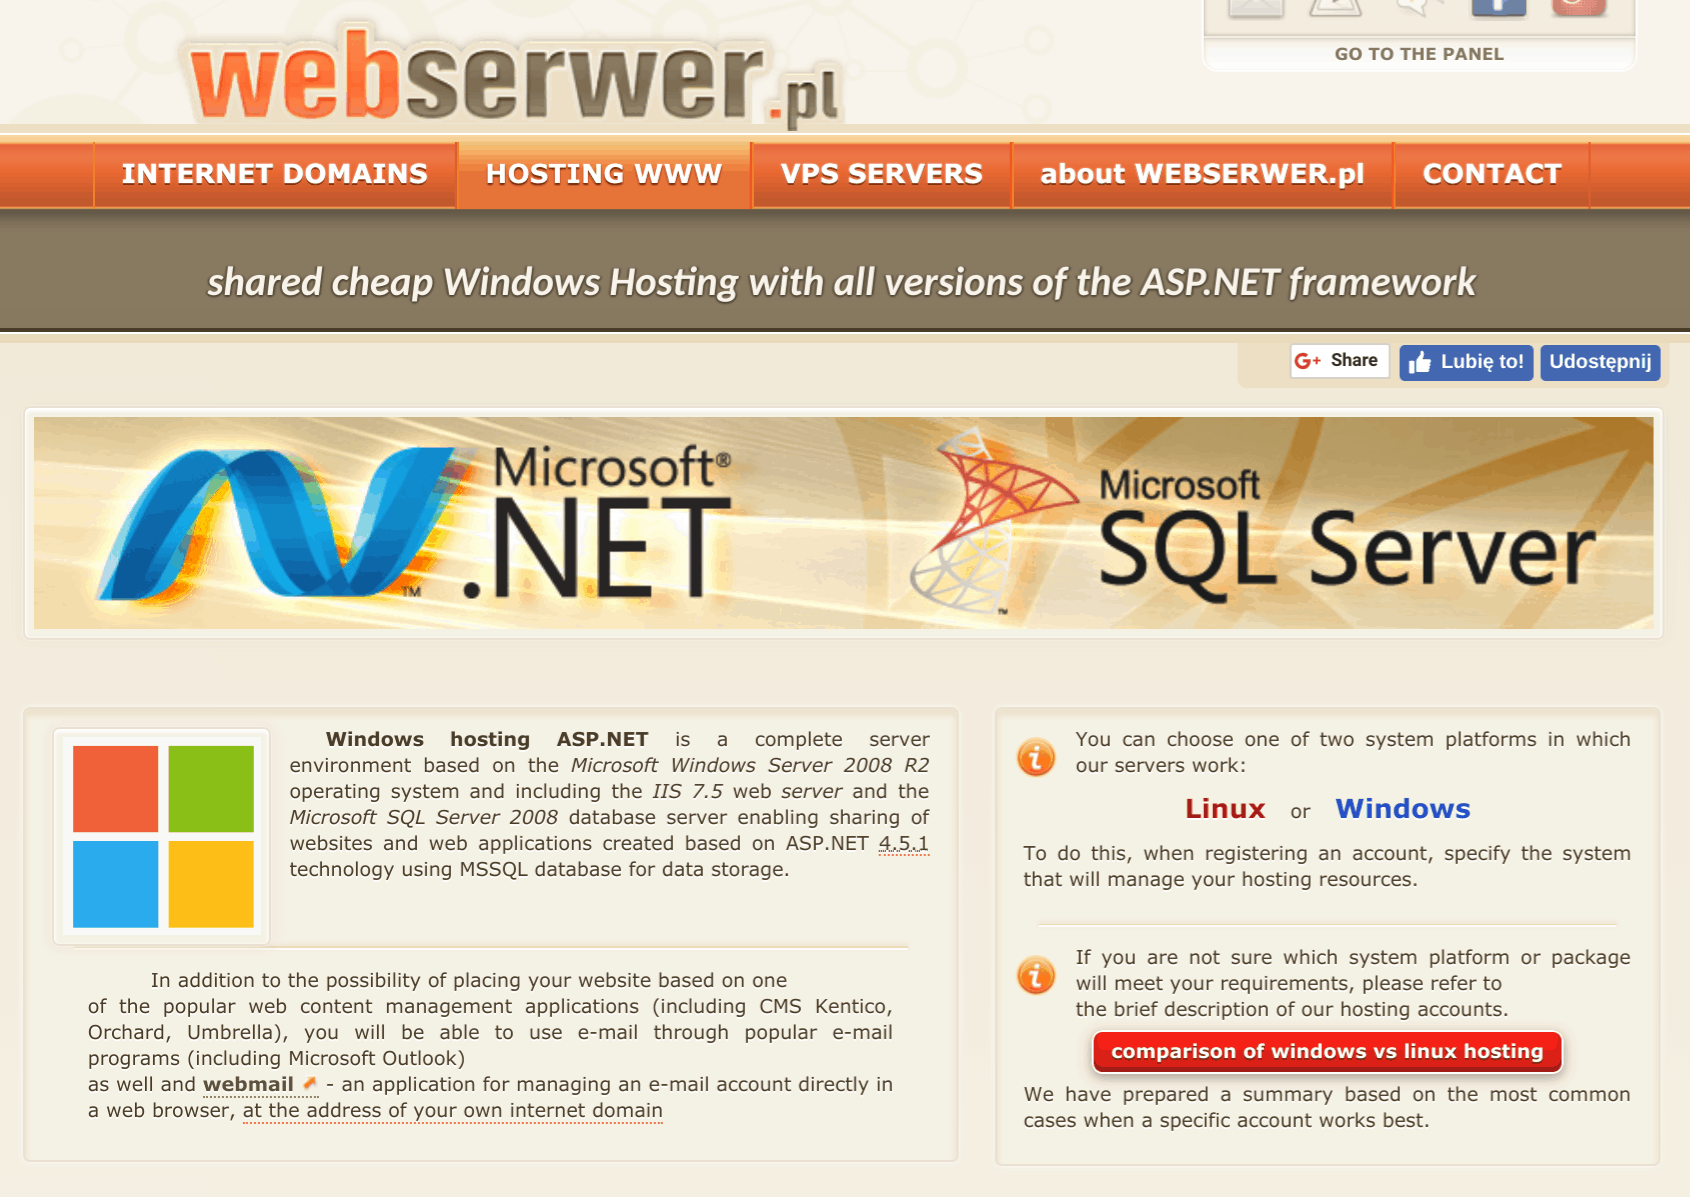 WEBSERWER.pl-overview1